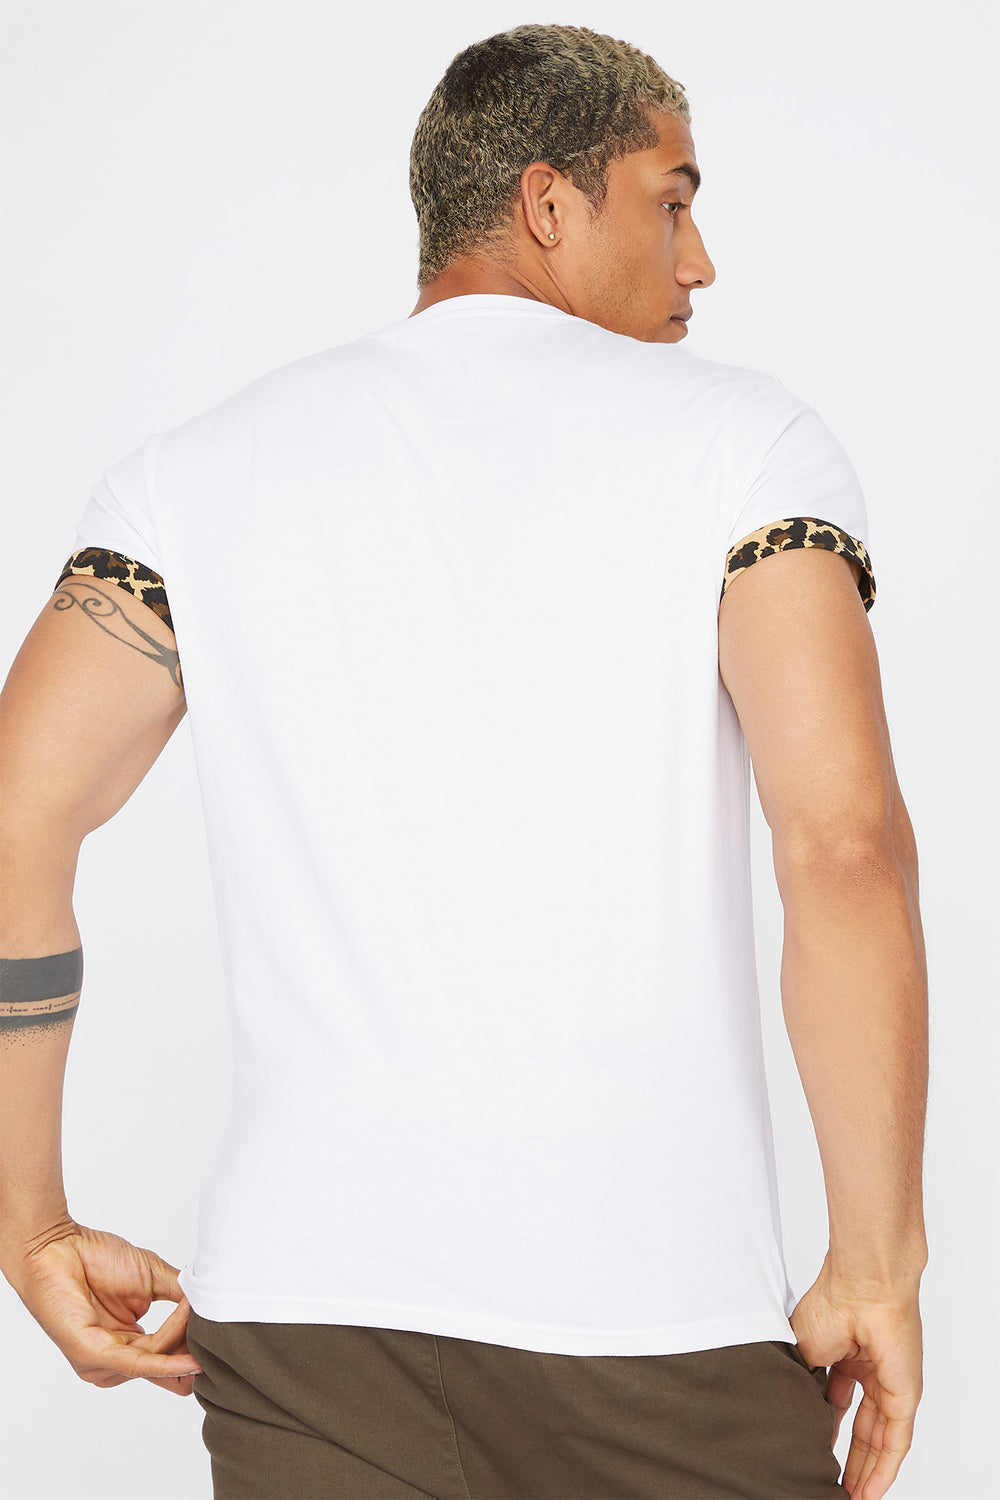 Contrast Animal Printed Pocket T-Shirt Off White